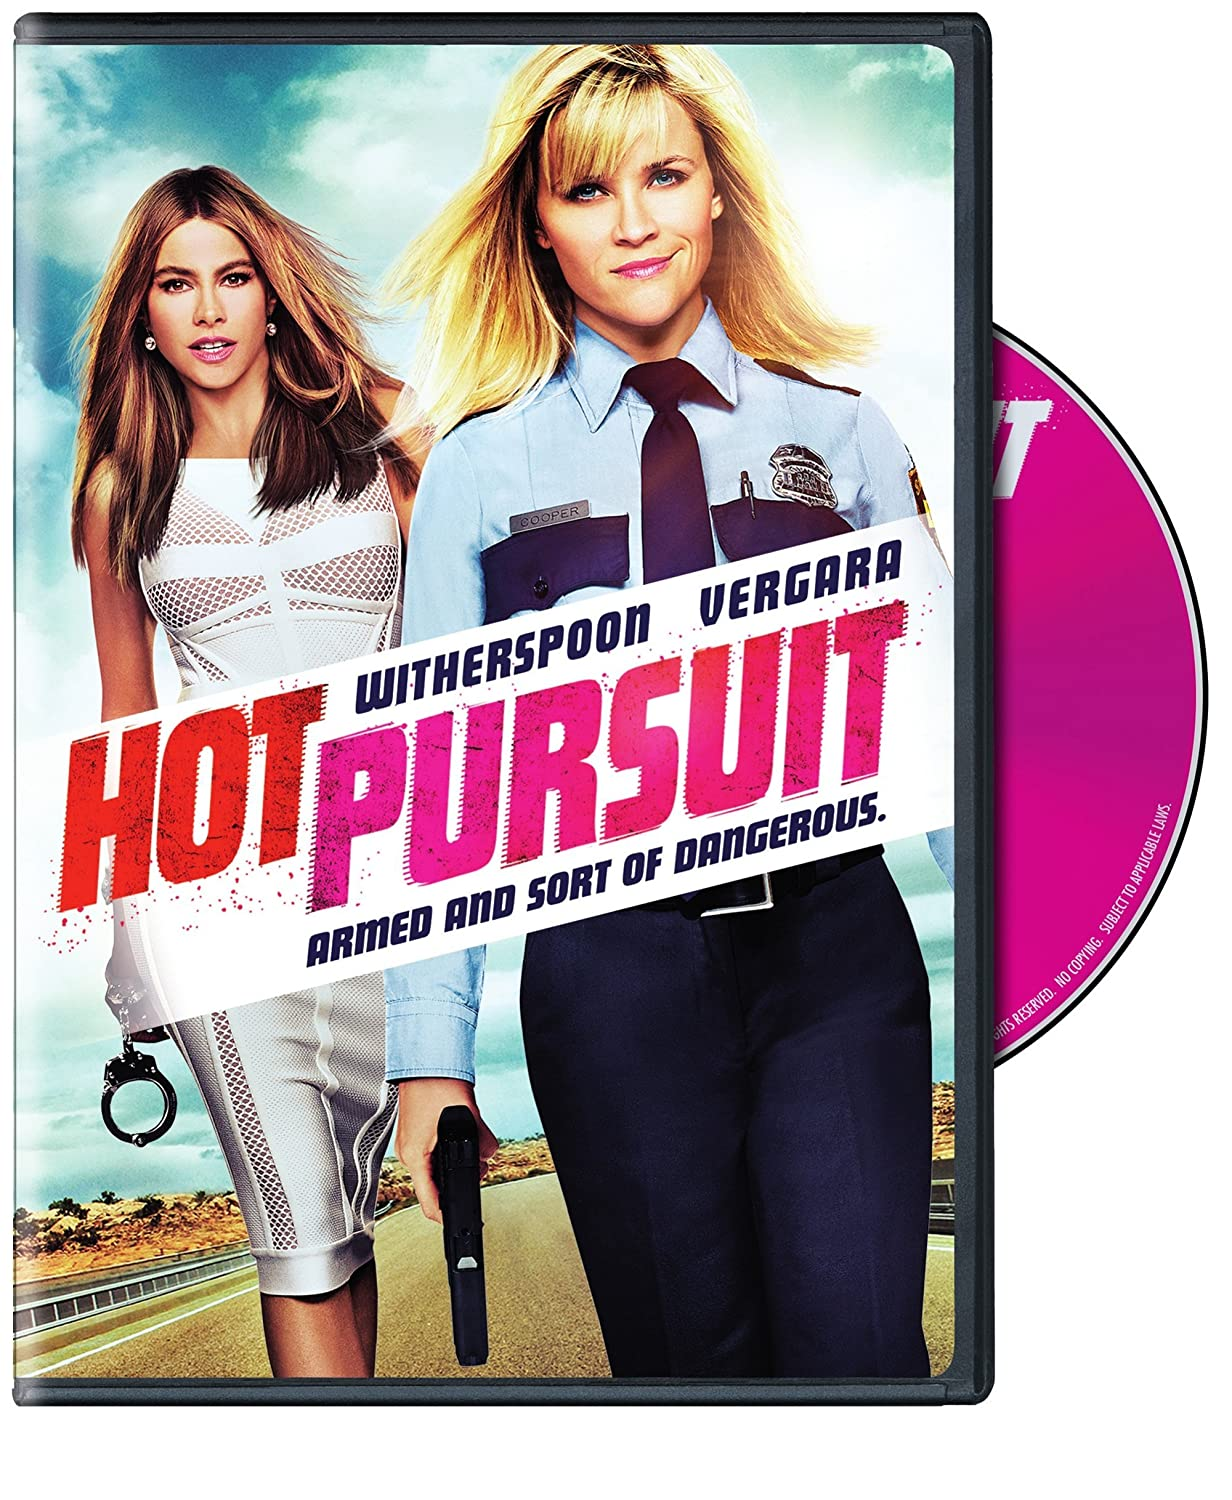 Amazon.com: Hot Pursuit: Reese Witherspoon, Sofía Vergara, John ...